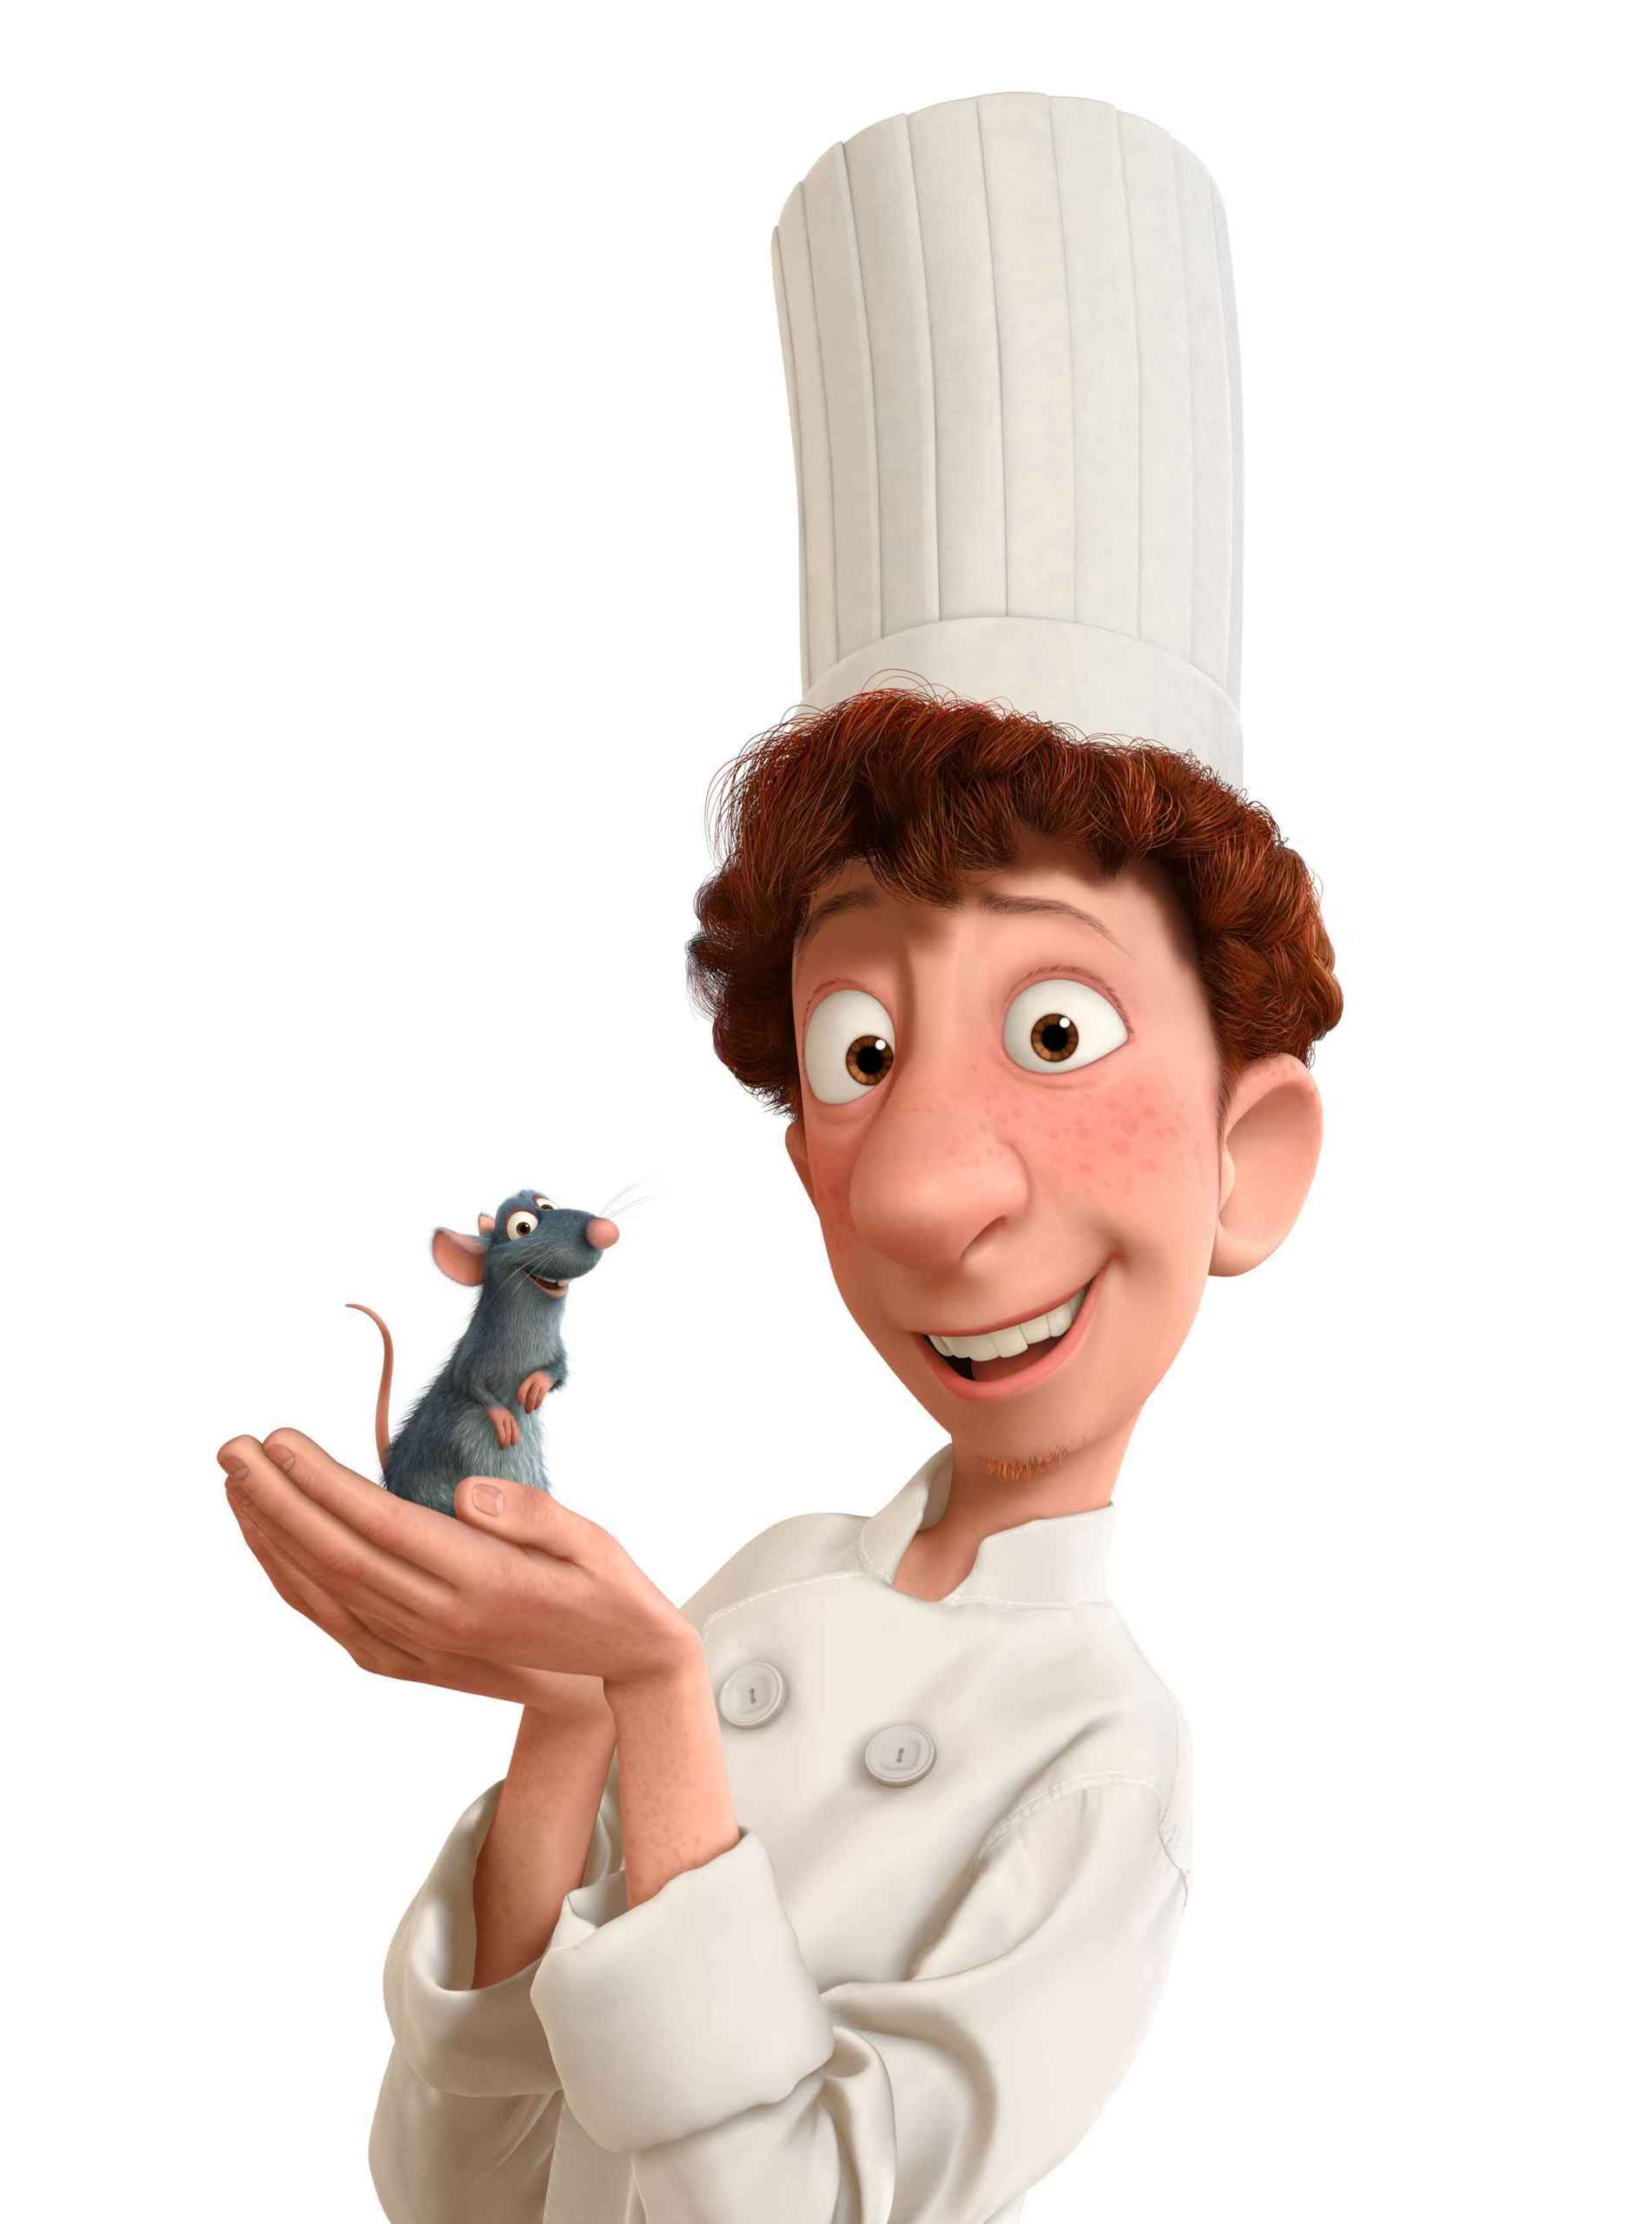 ratatouille production stills ratatouille 1847049 1902 2560